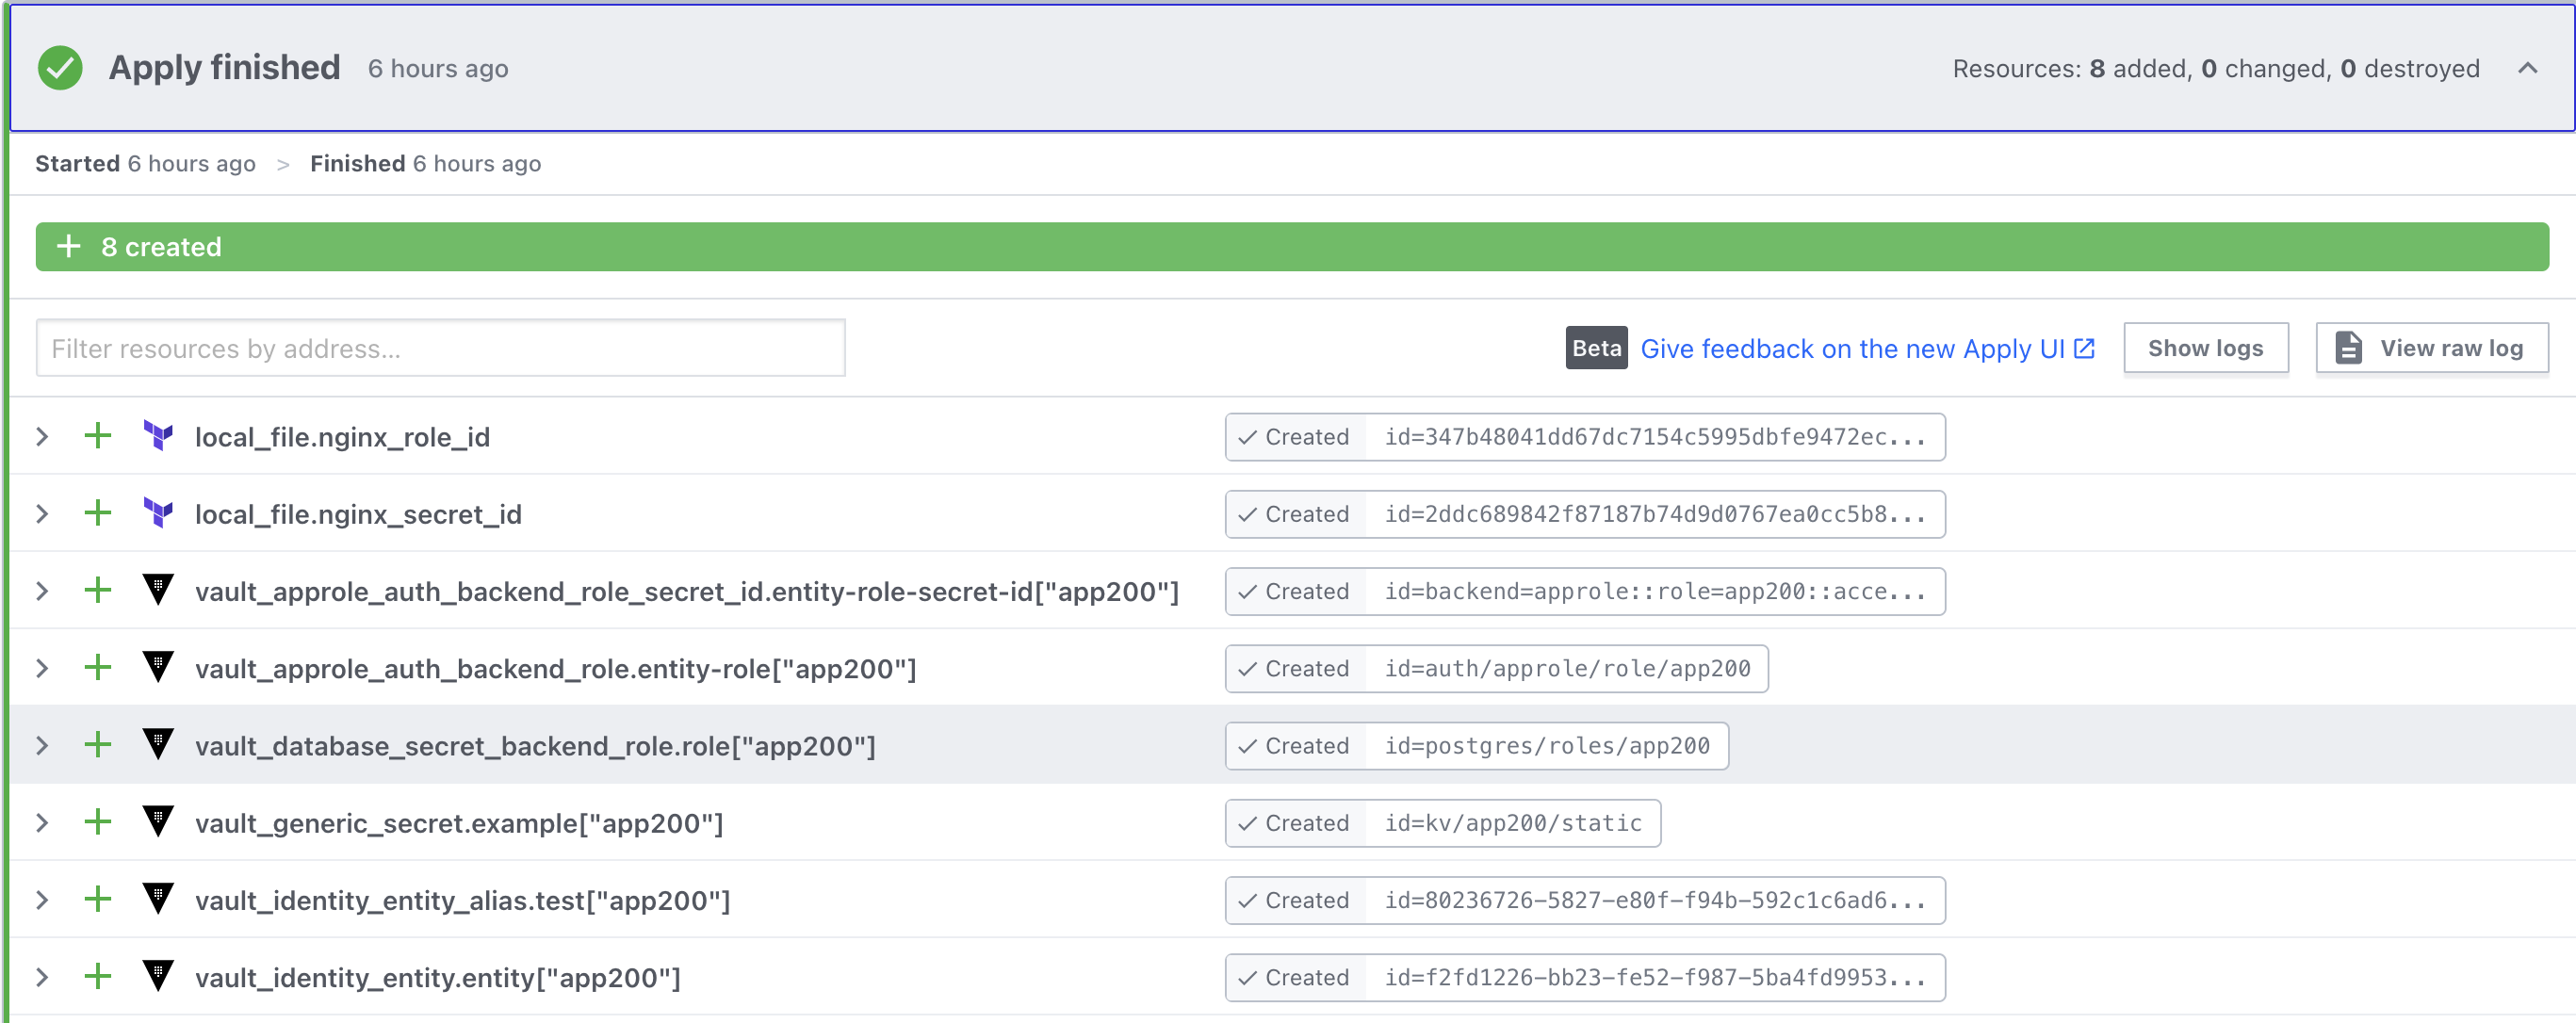 Terraform Cloud  UI showing app200 related resources being created